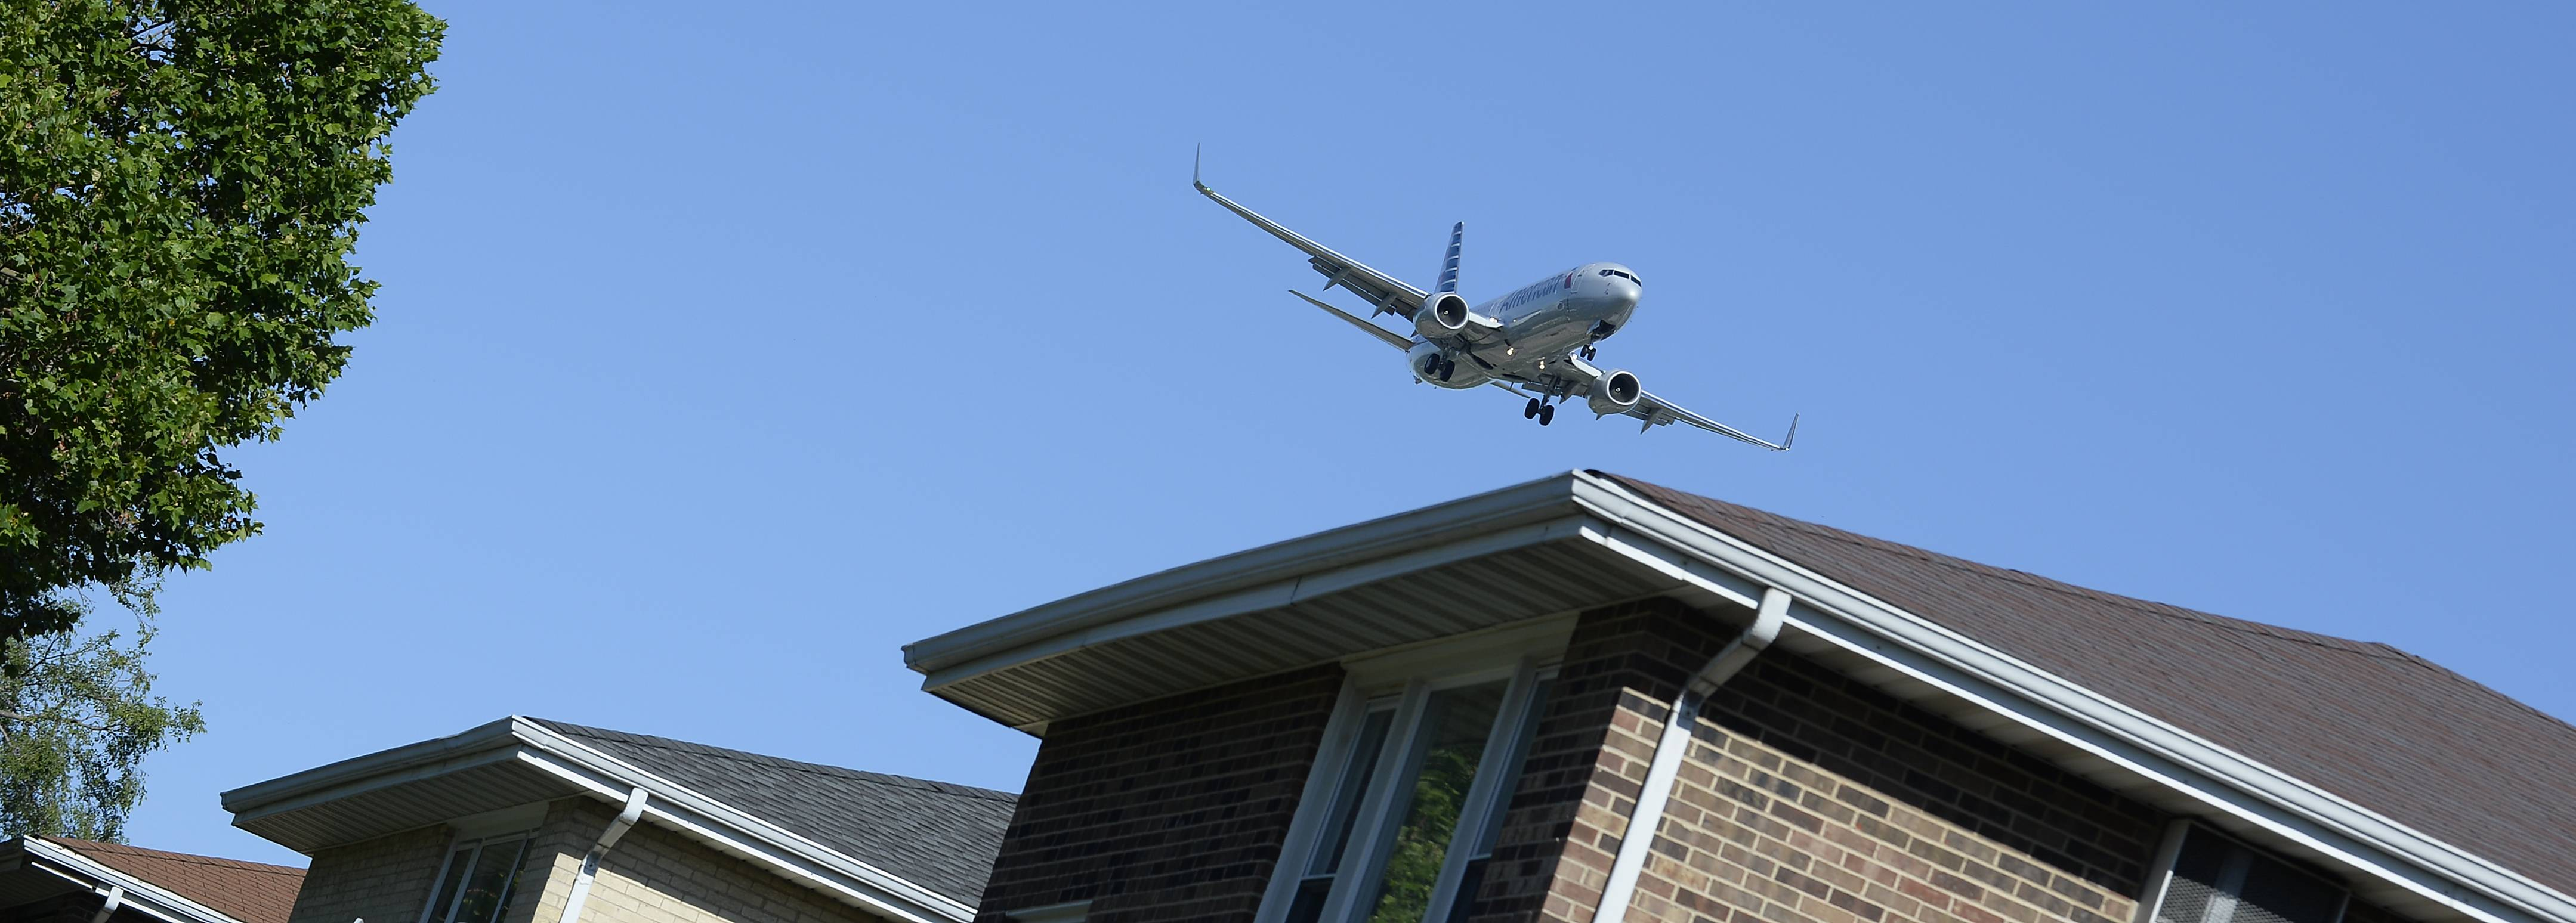 Mark Welsh/mwelsh@dailyherald.com Low-flying jets prepare to land at O'Hare International Airport running parallel to the houses on Hillside Drive in Bensenville.